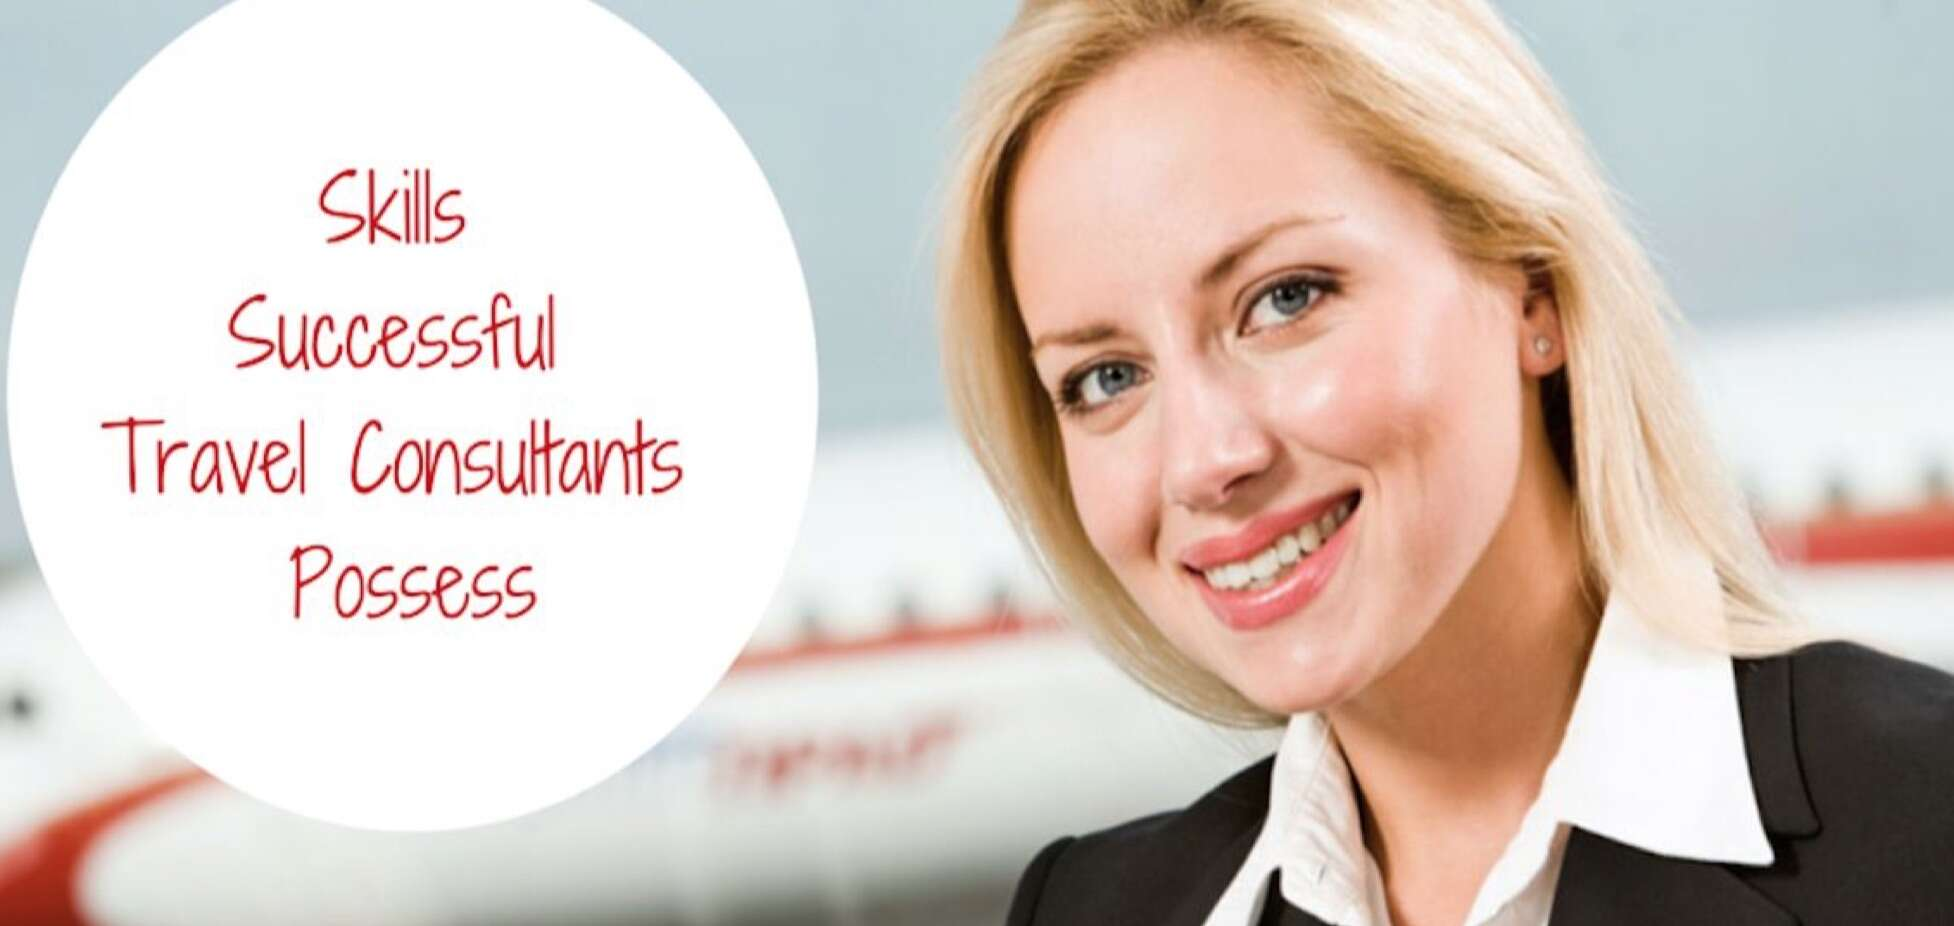 How to Become a Successful Travel Consultant